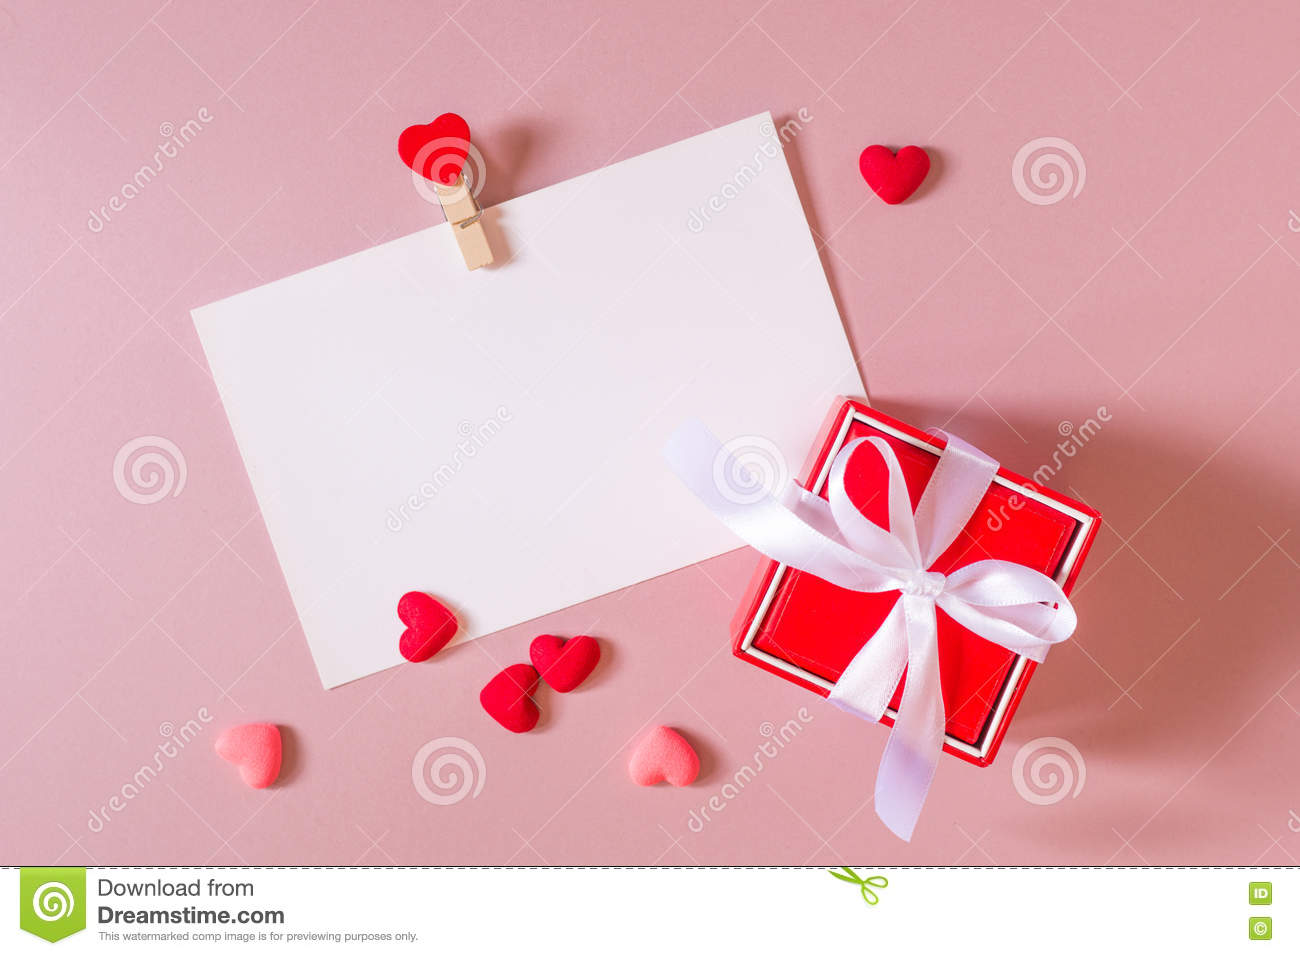 Red Gift Box With Bow Stationery Photo Postcard Template With